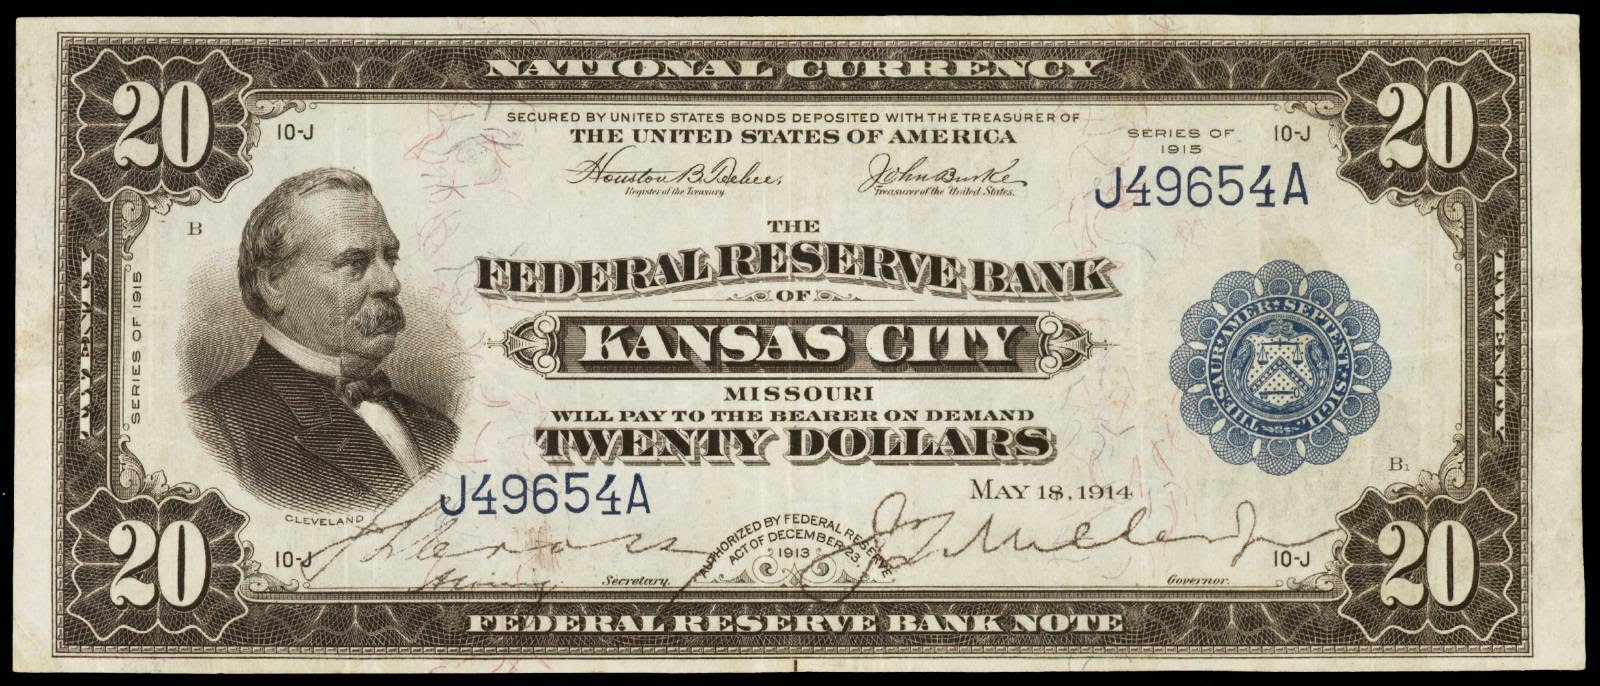 USD 20 Dollar Federal Reserve Bank Note 1915